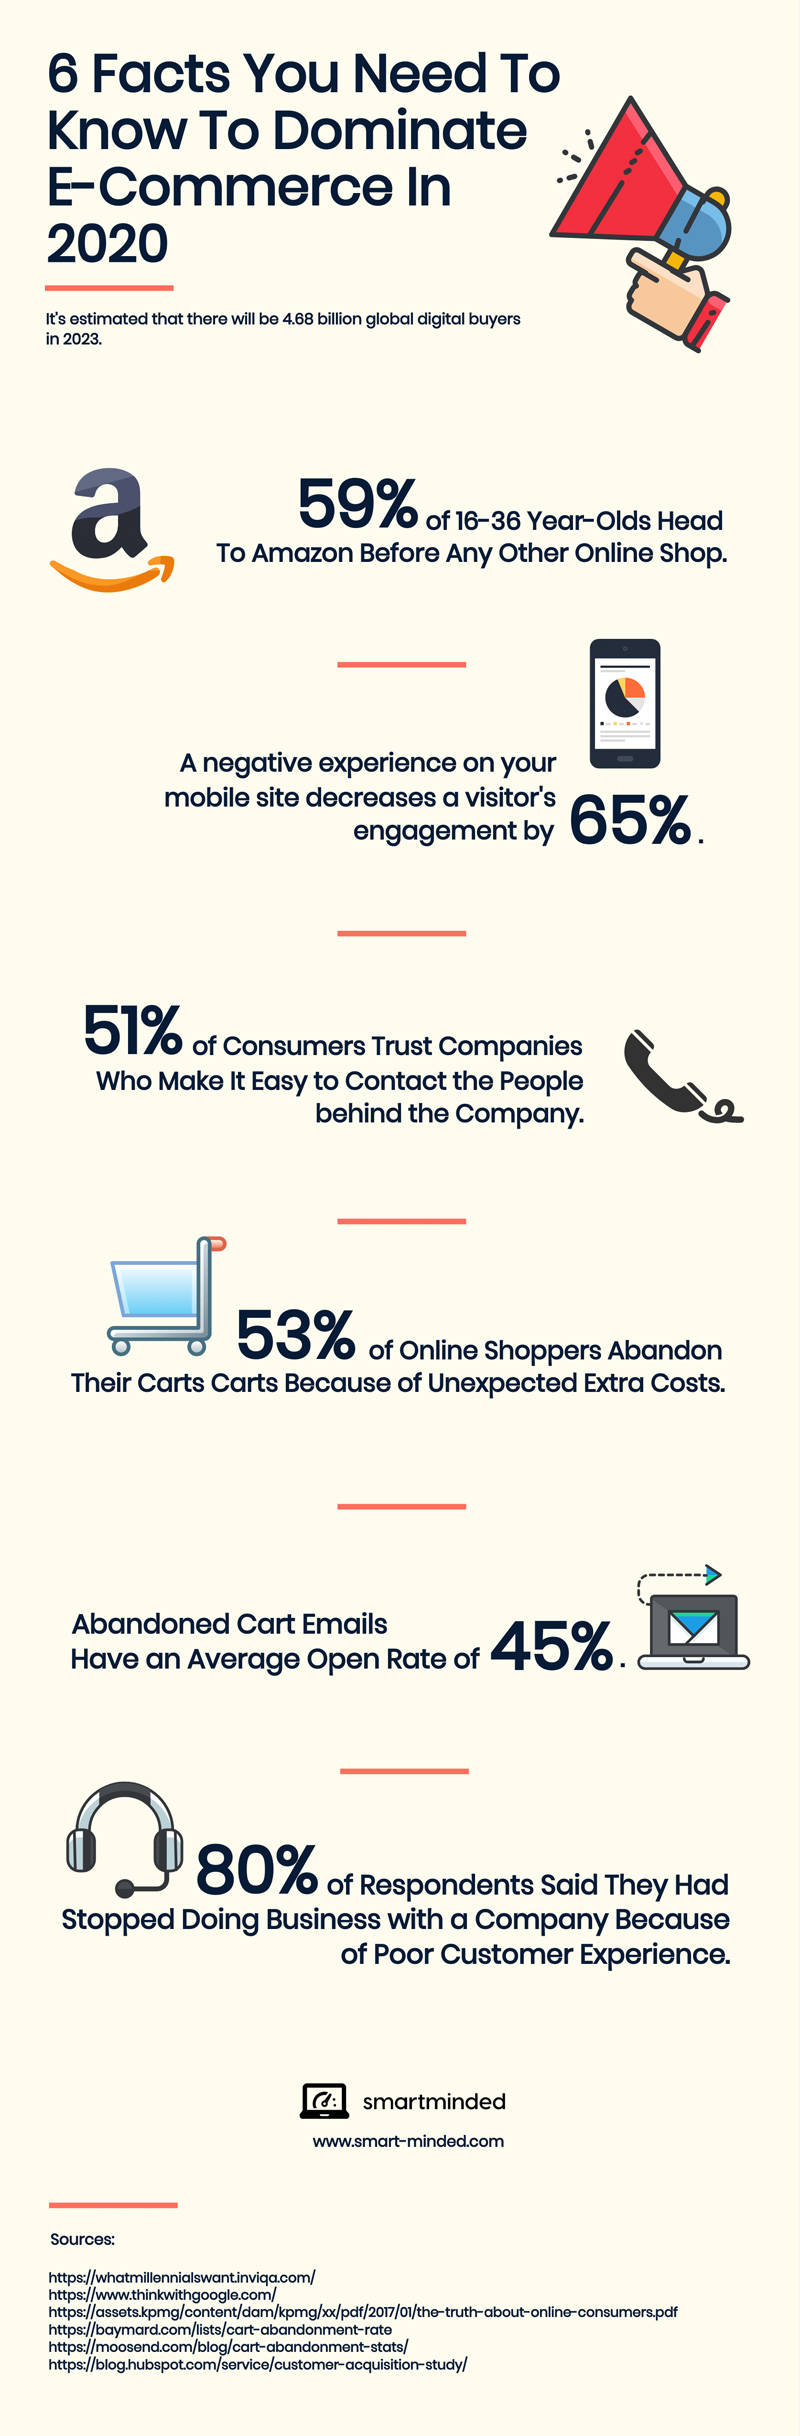 6 Facts You Need to Know to Dominate e-Commerce in 2020